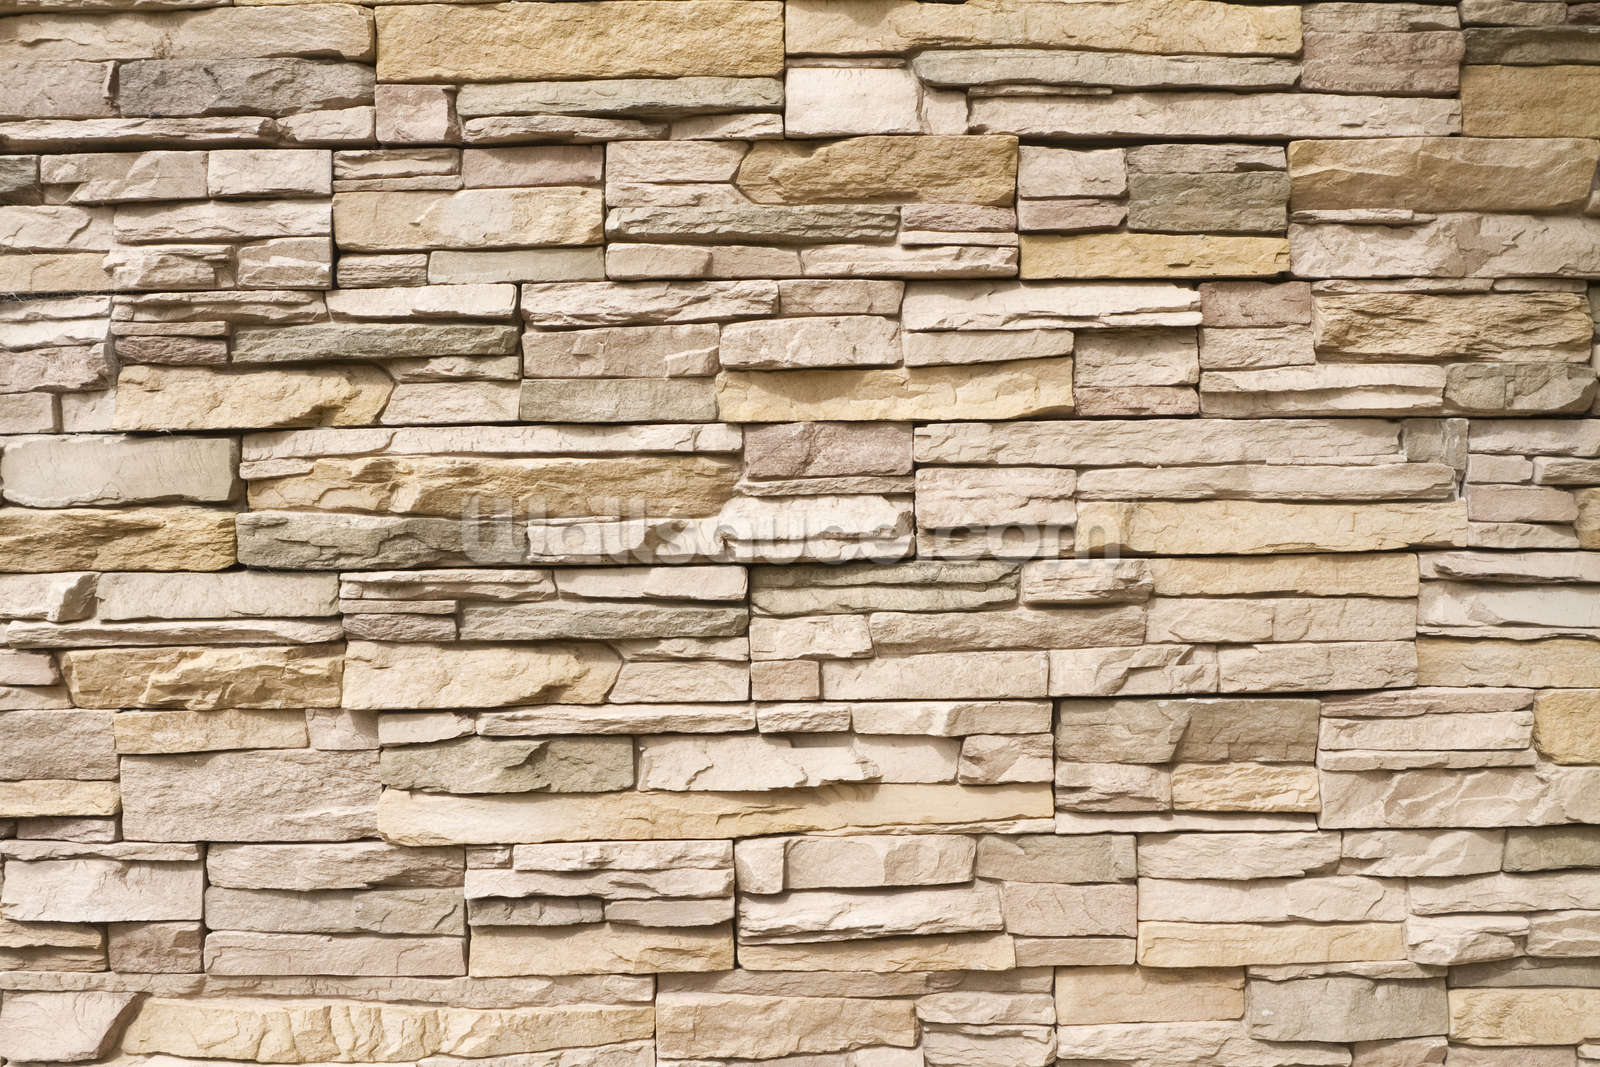 Stacked stone wall wallpaper wall mural wallsauce for Wallpaper images for house walls